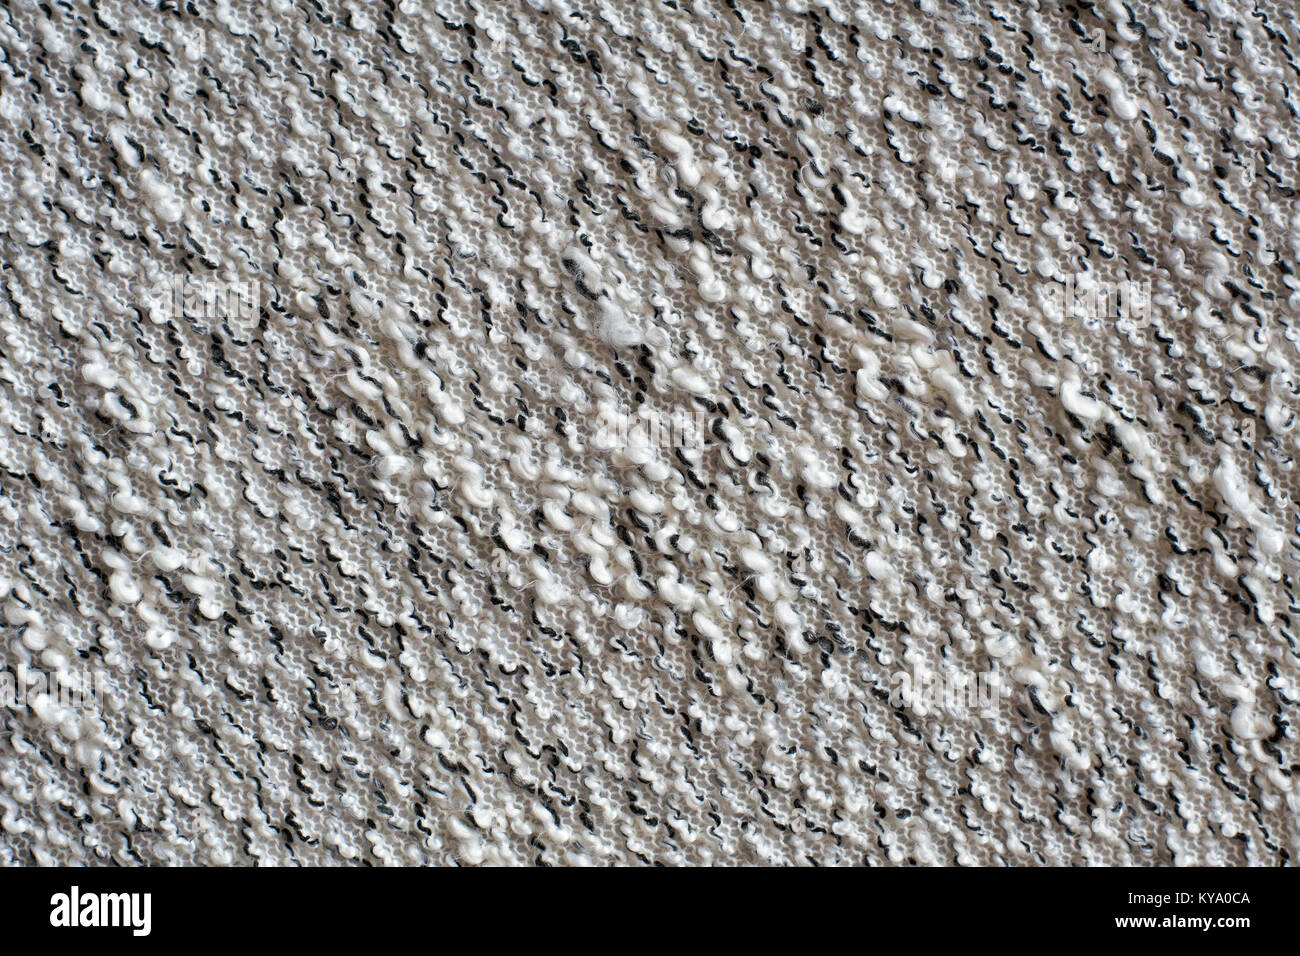 07360cdff0b Heather grey knitted fabric made of synthetic yarn. Diagonal direction  stitch. Textured background